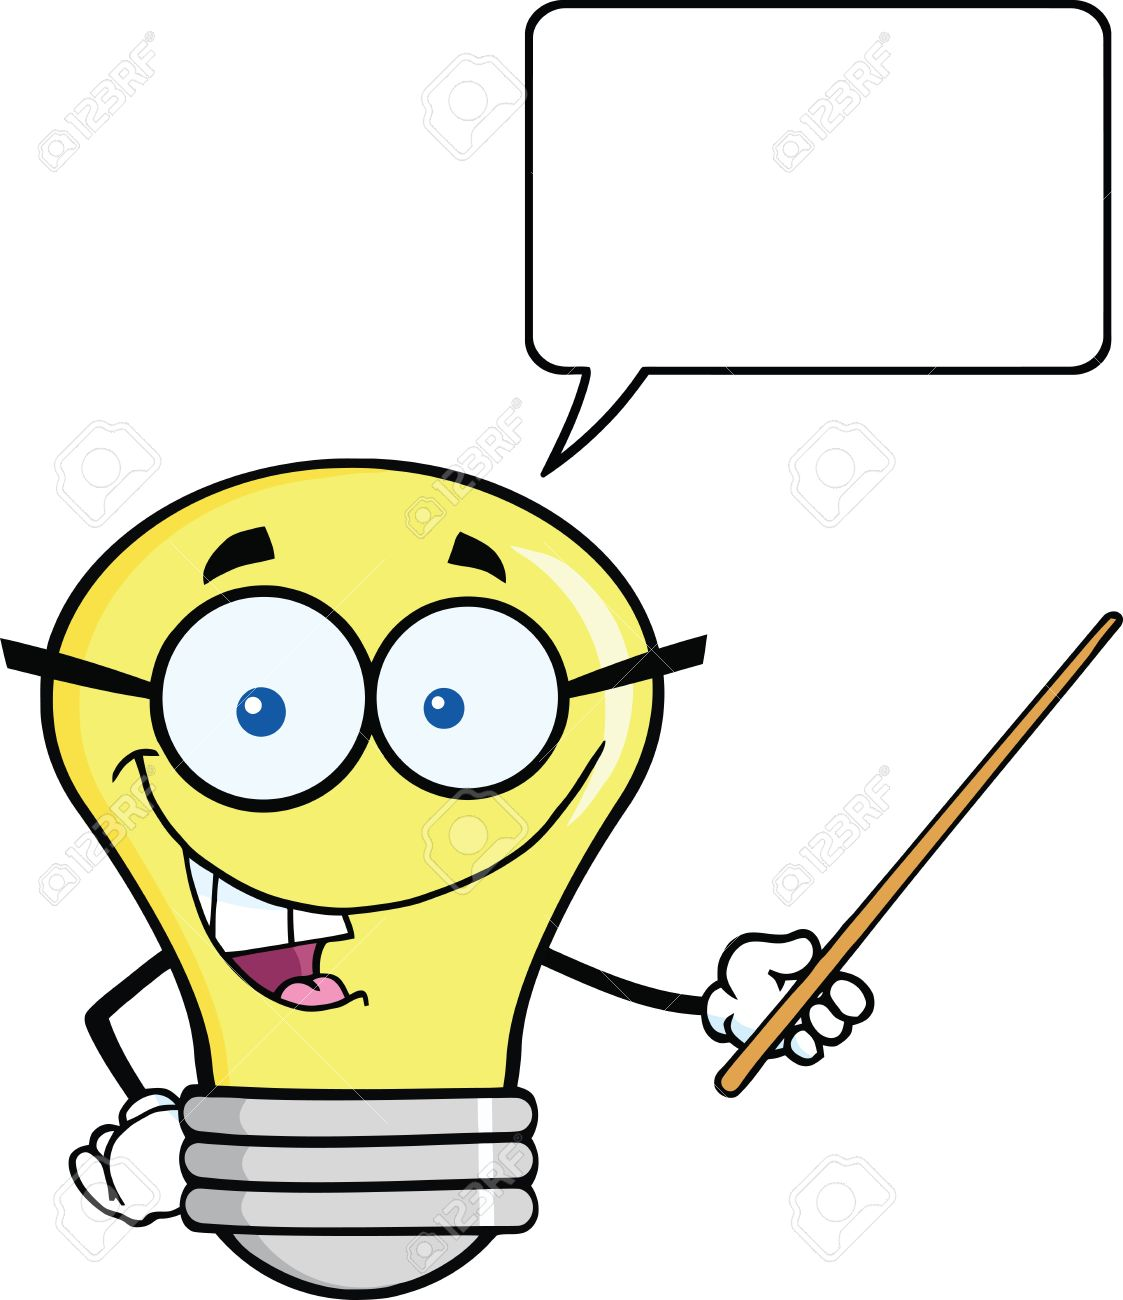 smiling light bulb character with a pointer and speech bubble rh 123rf com Light Bulb Thinking Idea Light Bulb No Background